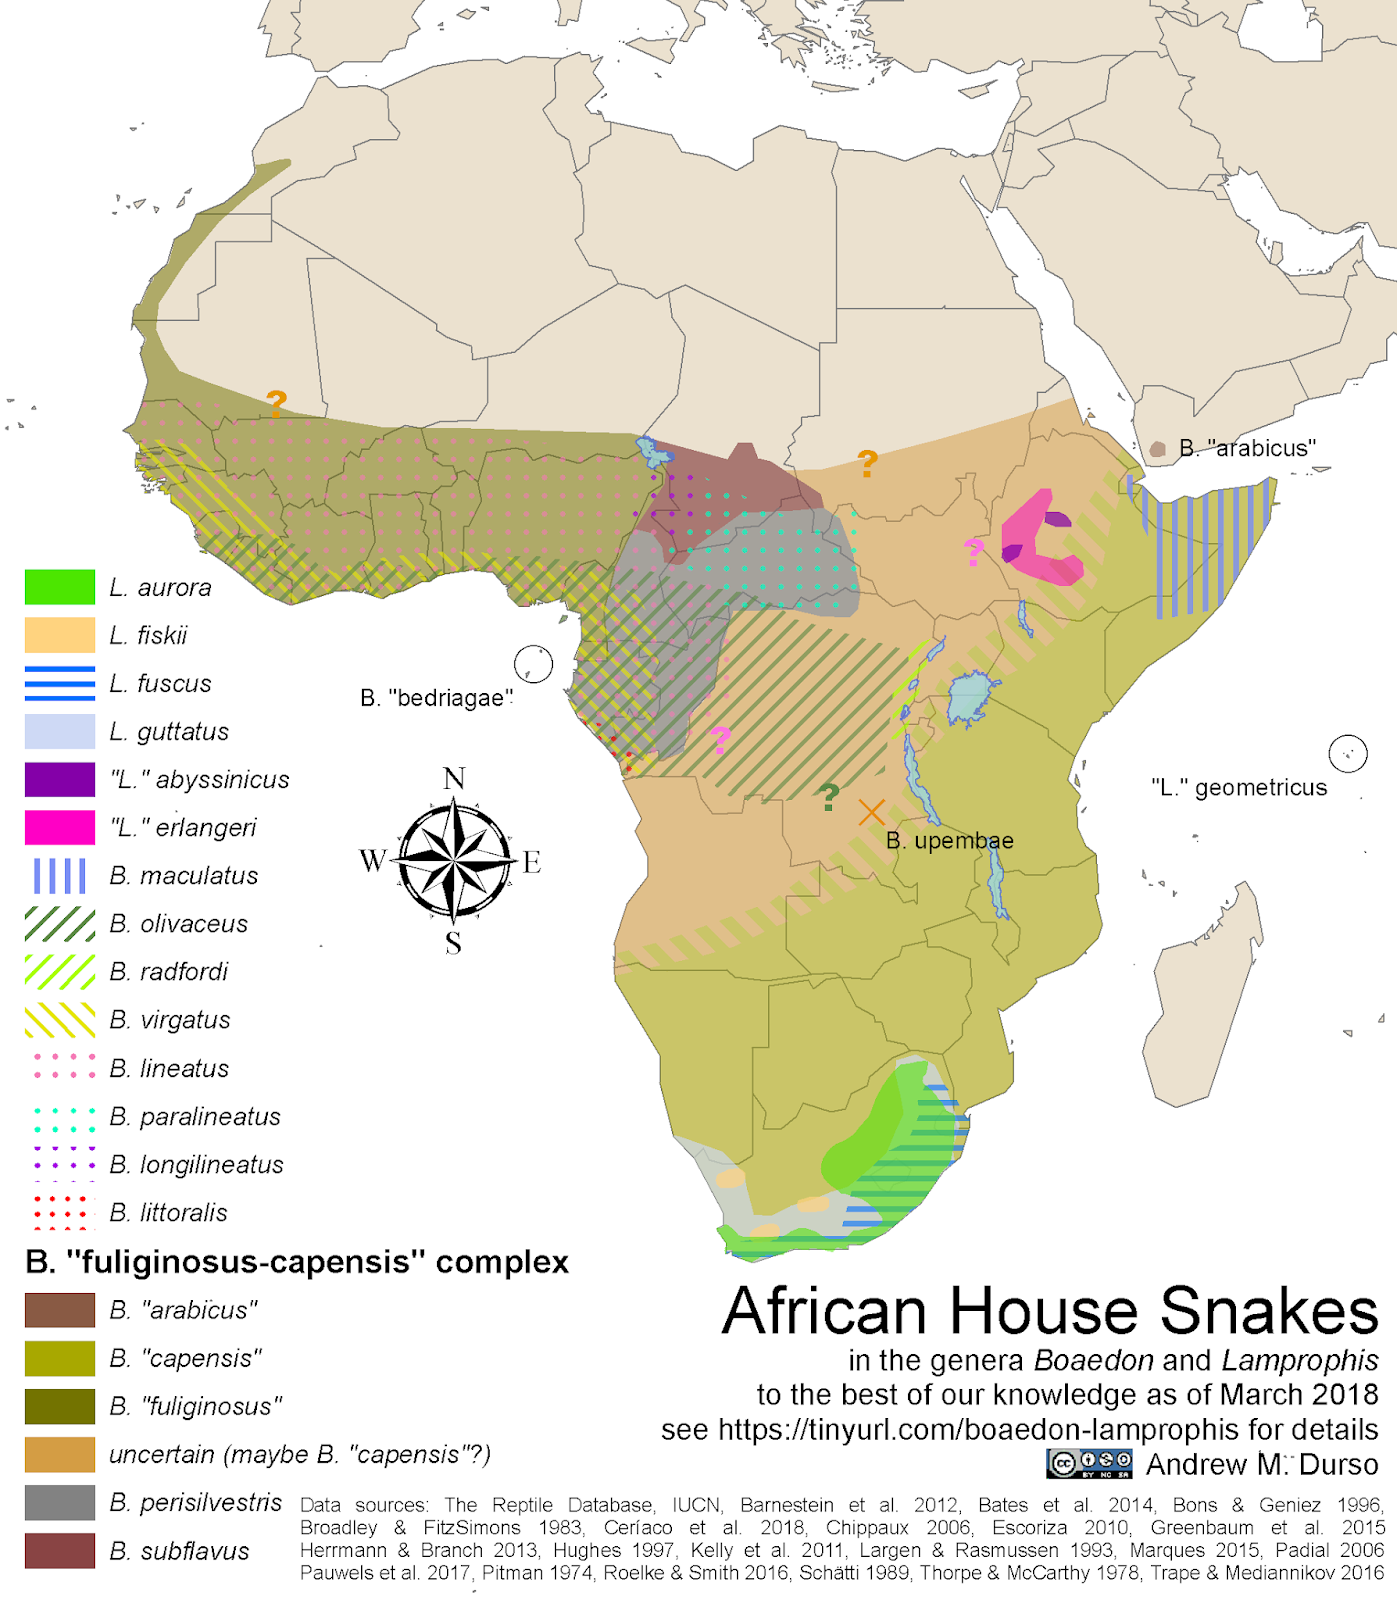 Life Is Short But Snakes Are Long Snake Skeleton Diagram Rattlesnake Skull By Map Of The Species Currently In Boaedon Lamprophis